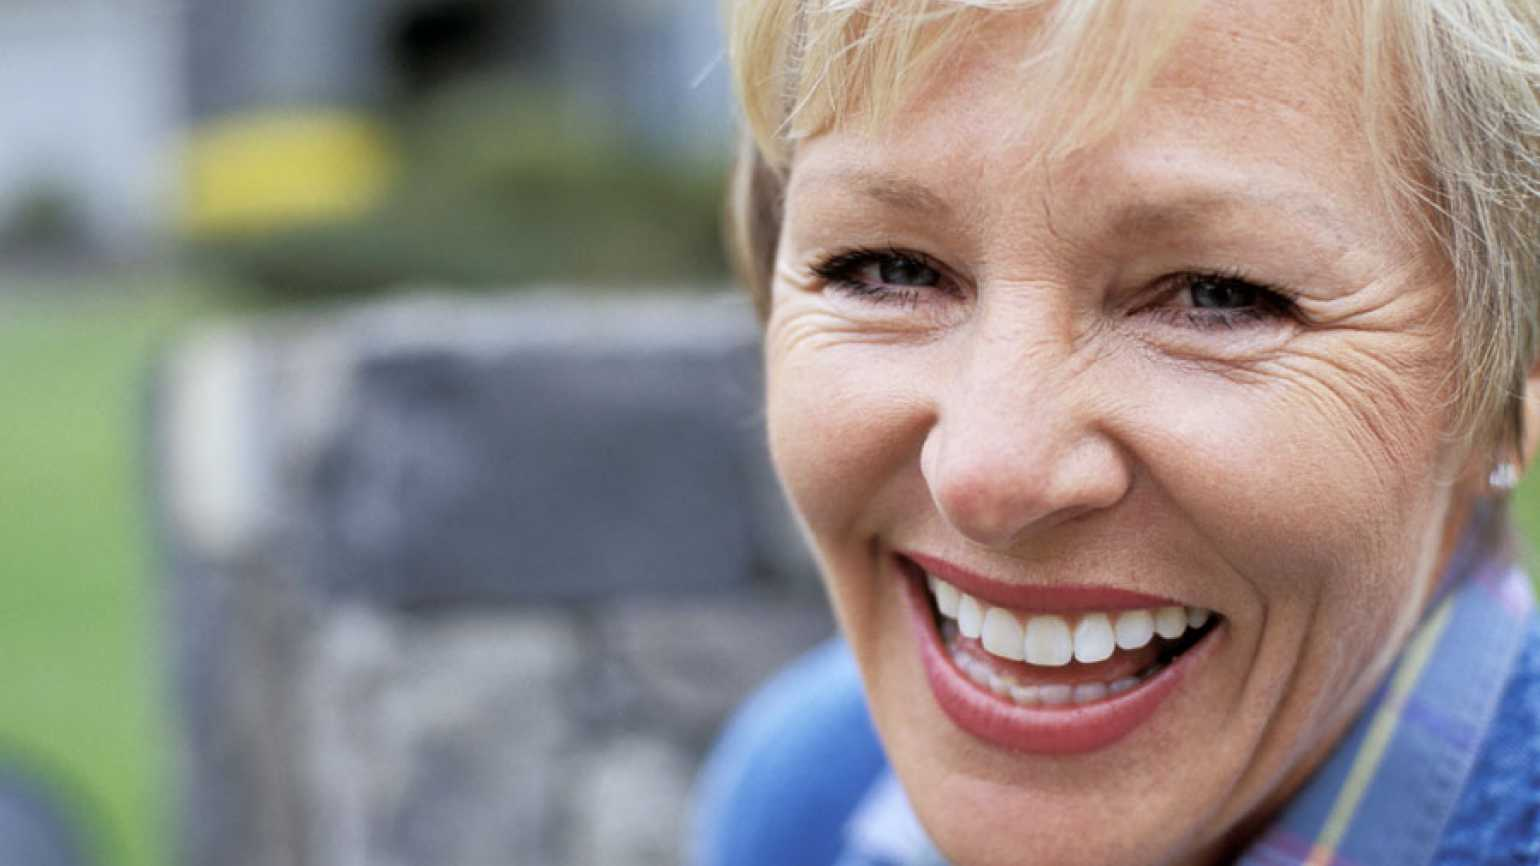 A happy mature woman smiles broadly